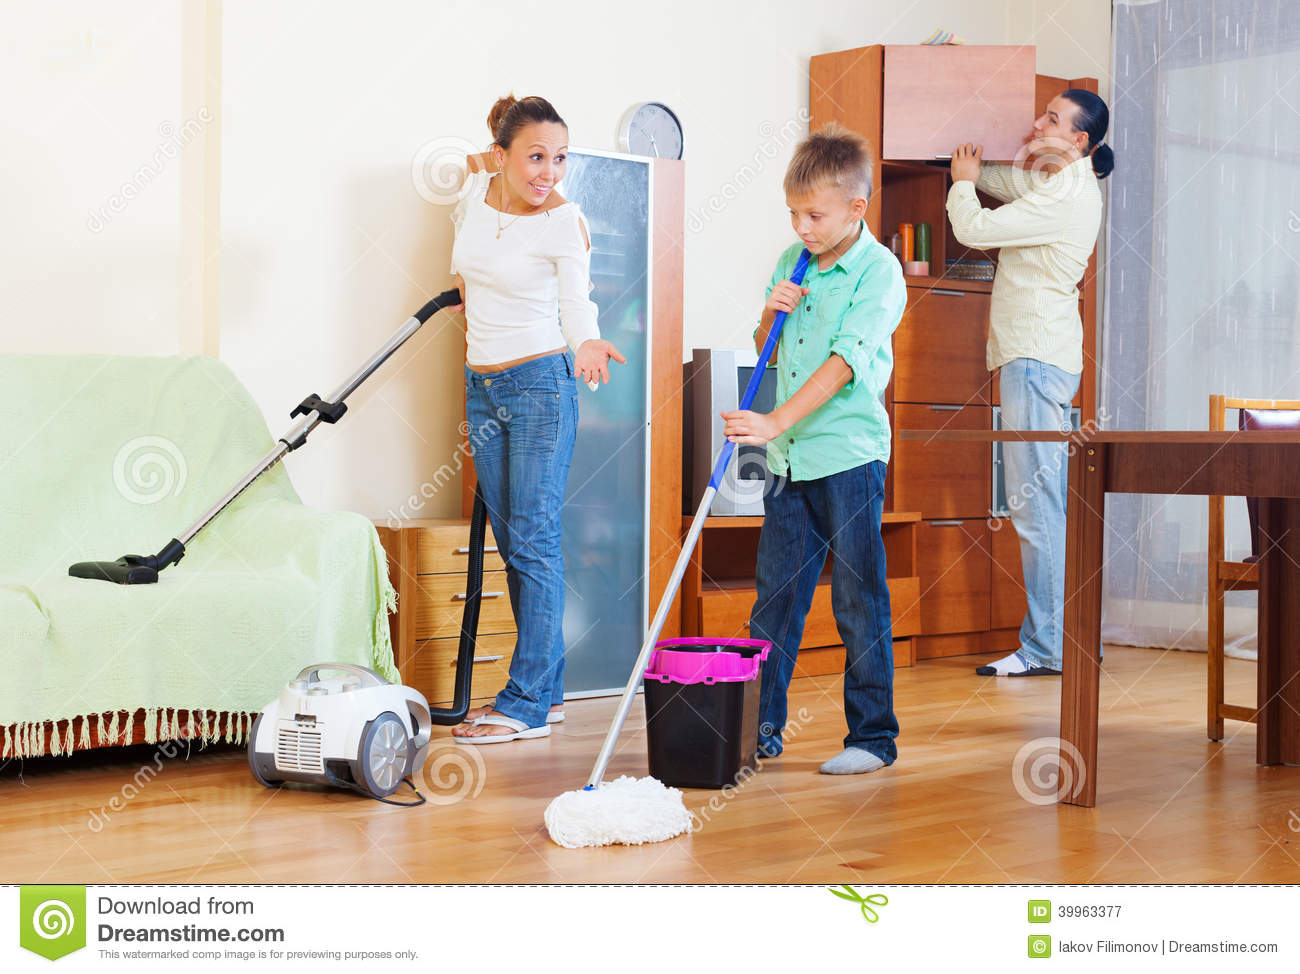 Juegos De Limpiar Casas Family Of Three With Teenager Doing Housework Stock Photo